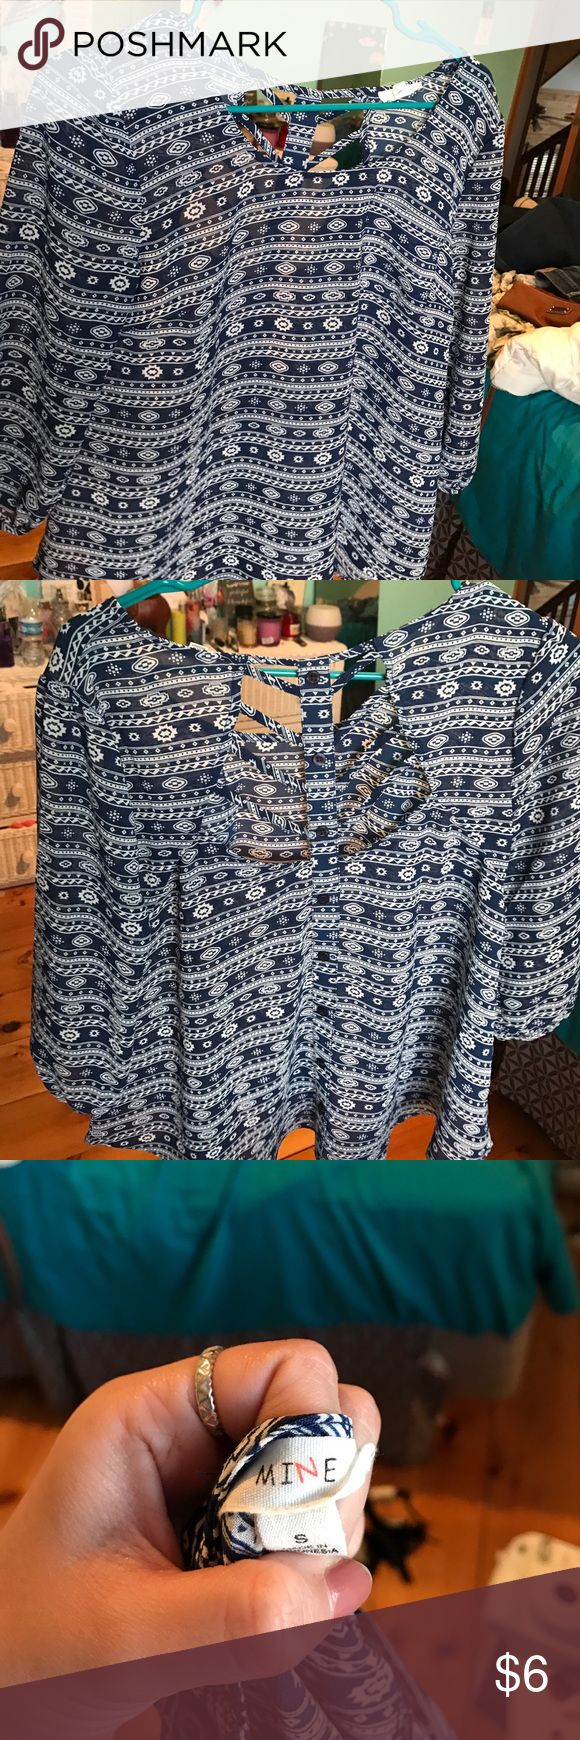 blue aztec long sleeve dress shirt // size small navy blue & white aztec patterned shirt- never worn after bought- perfect condition- size small Tops Blouses